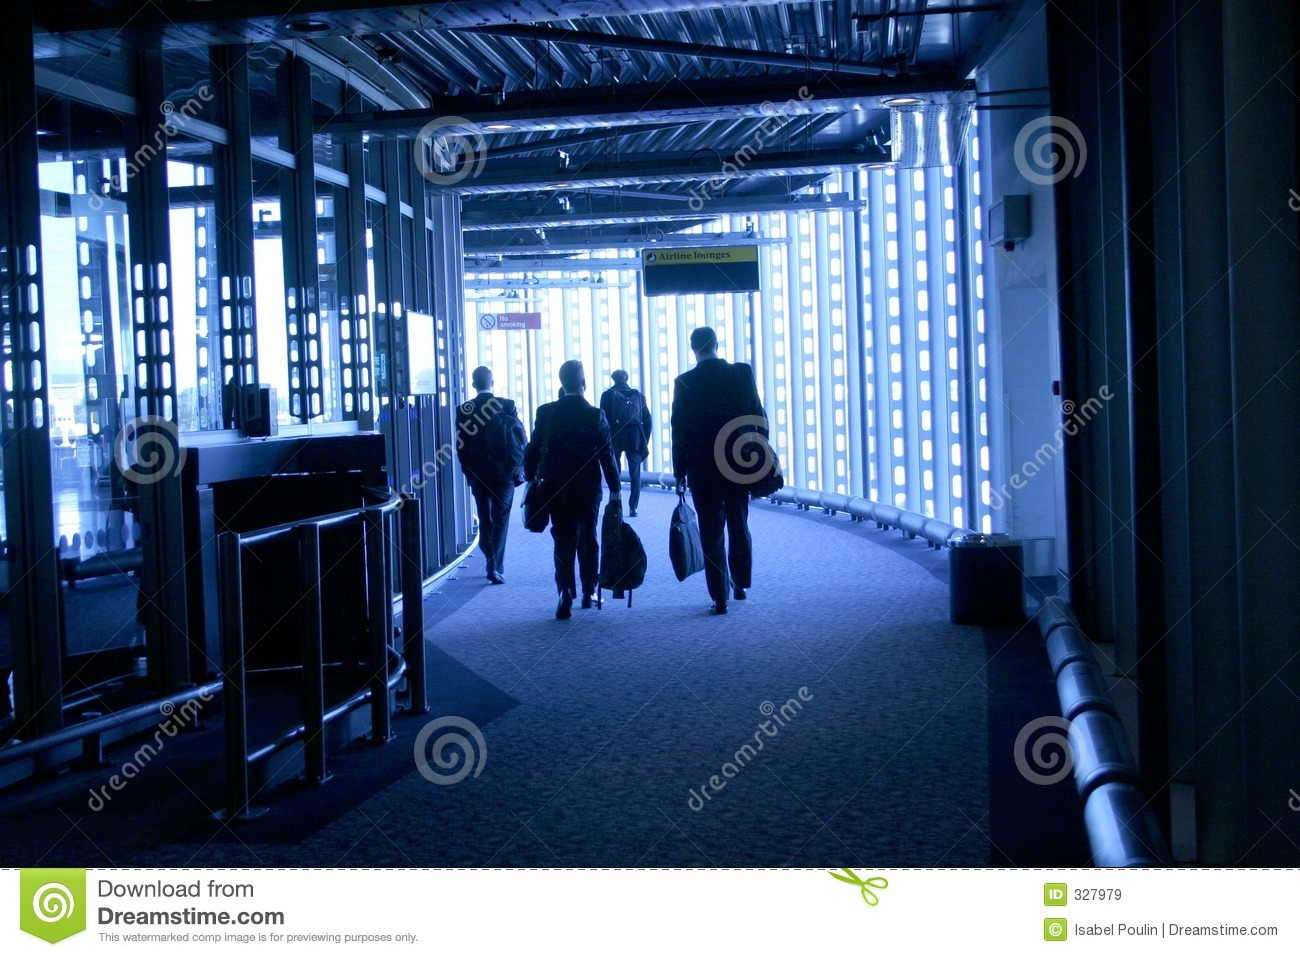 Free Images Traveling People Airport Bridge Business: People Walking In Airport Stock Image. Image Of Passenger